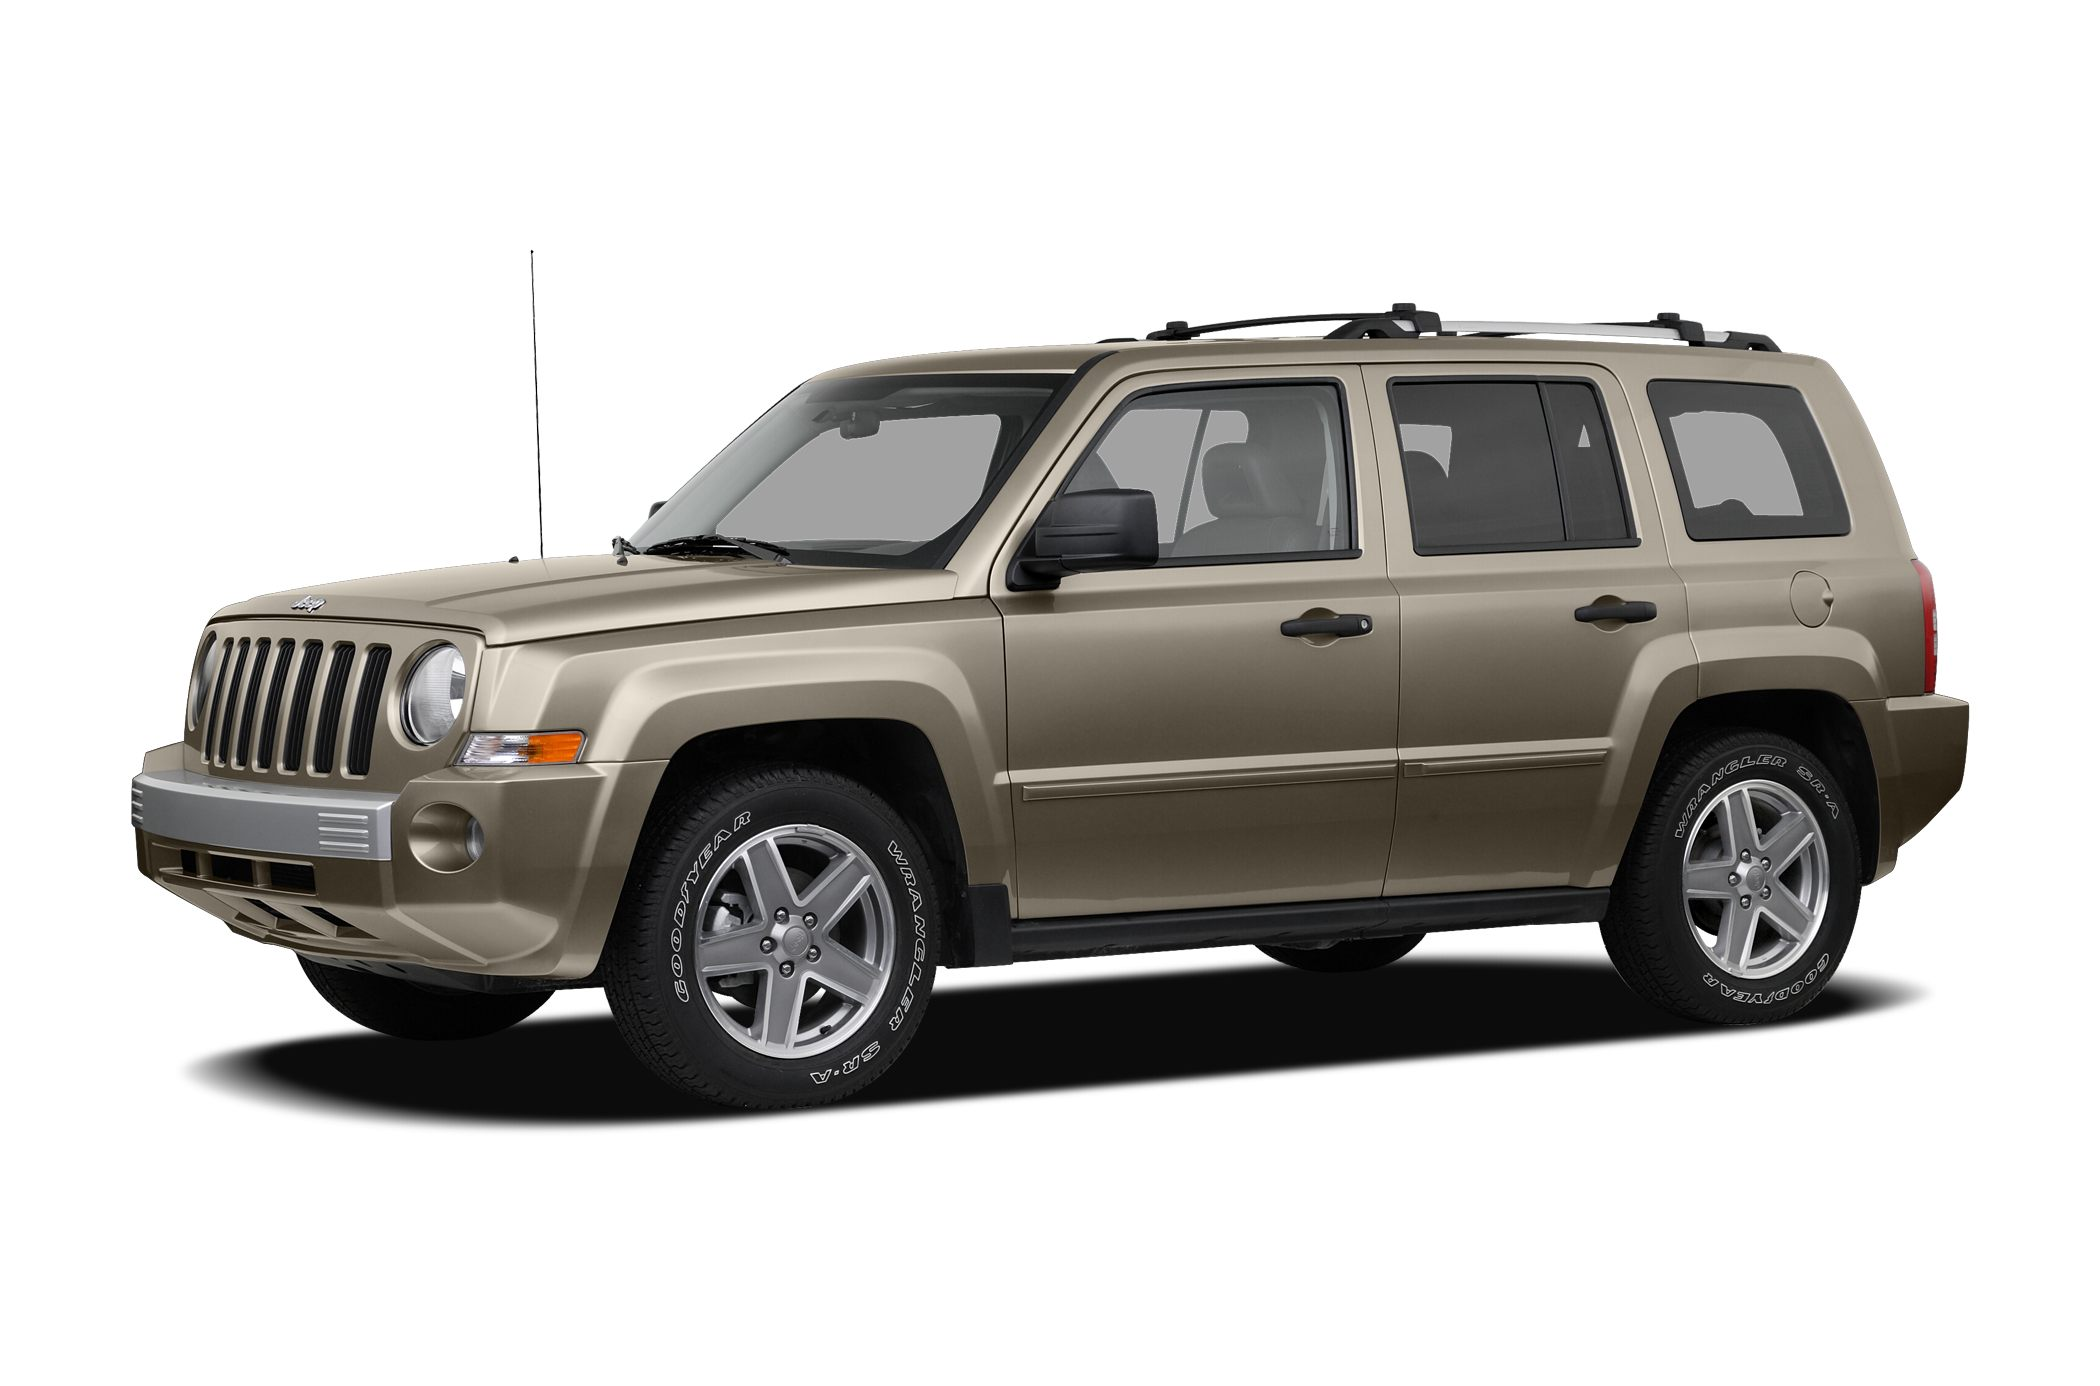 2007 Jeep Patriot Sport SUV for sale in Lansing for $10,900 with 89,093 miles